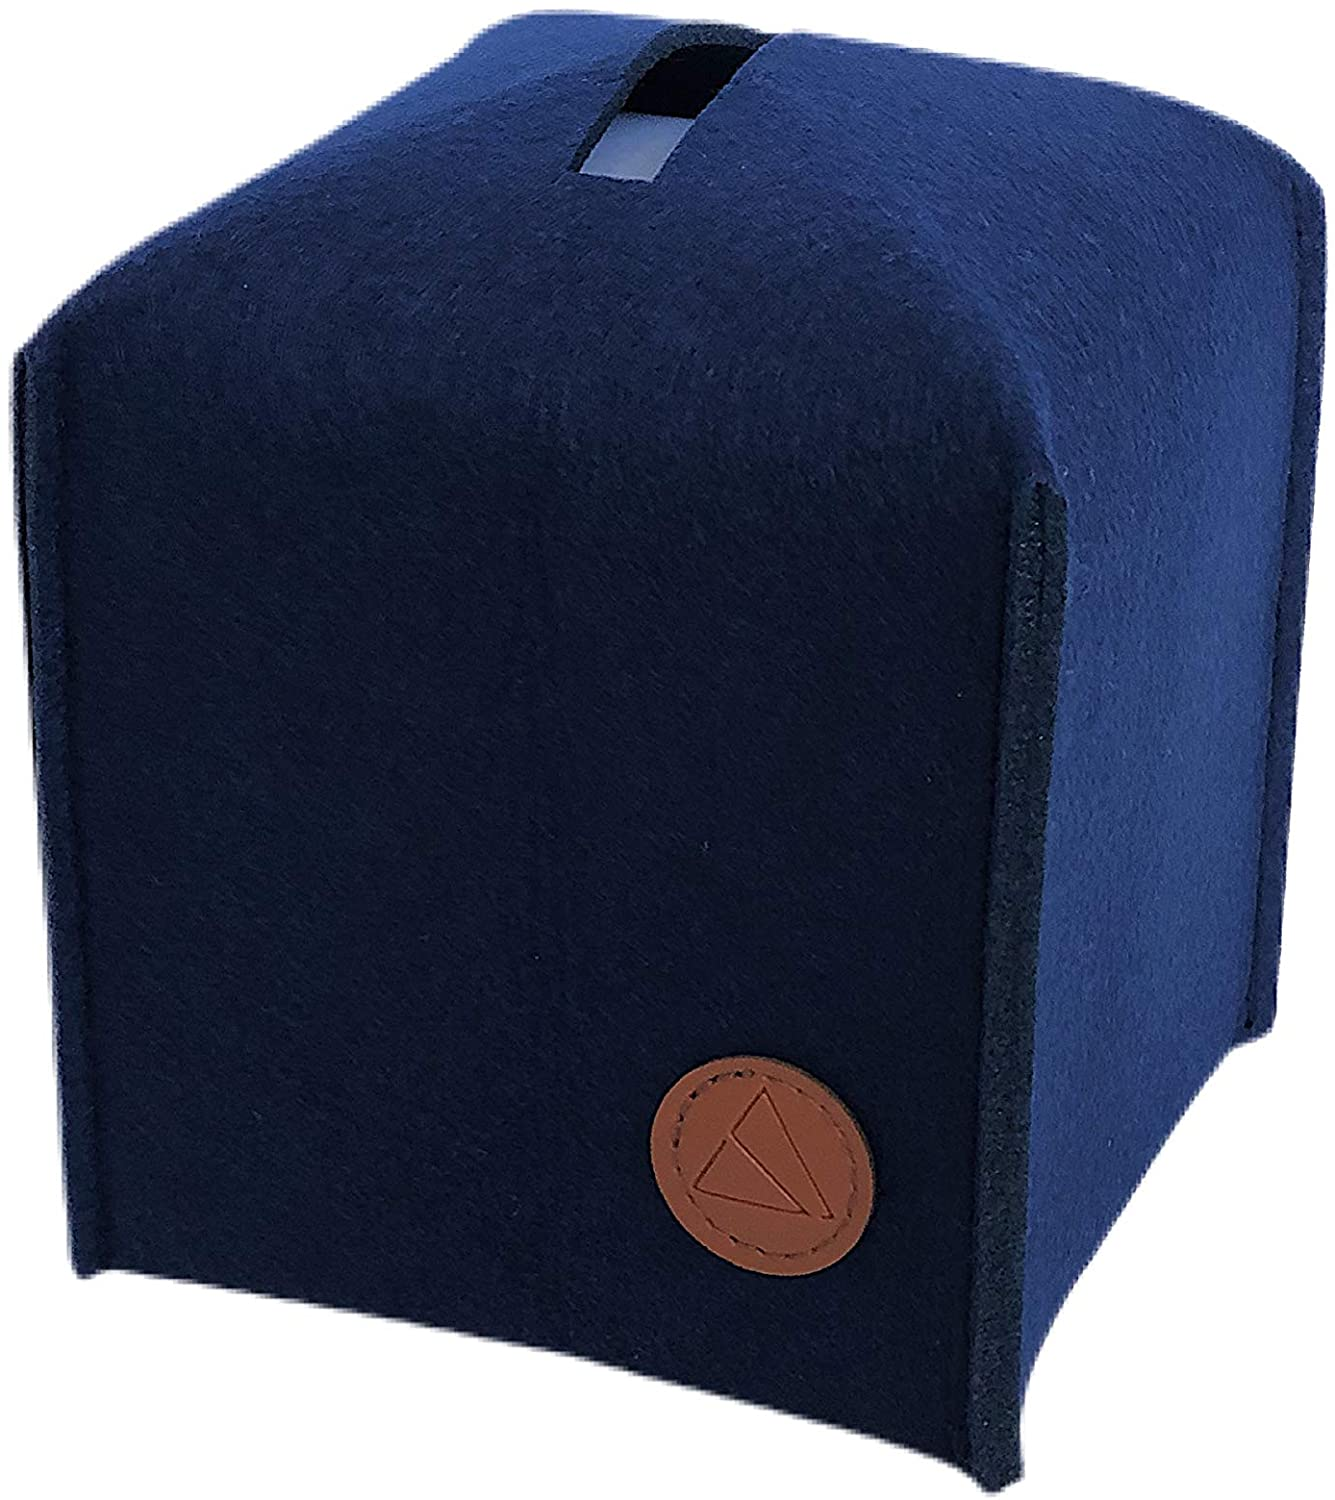 Landas Supply Felt Tissue Box Cover, Square Slide Out Facial Tissue Cover for Bathroom Vanity Countertops, Bedroom Dressers, Night Stands, Desks and Tables (Navy Blue)